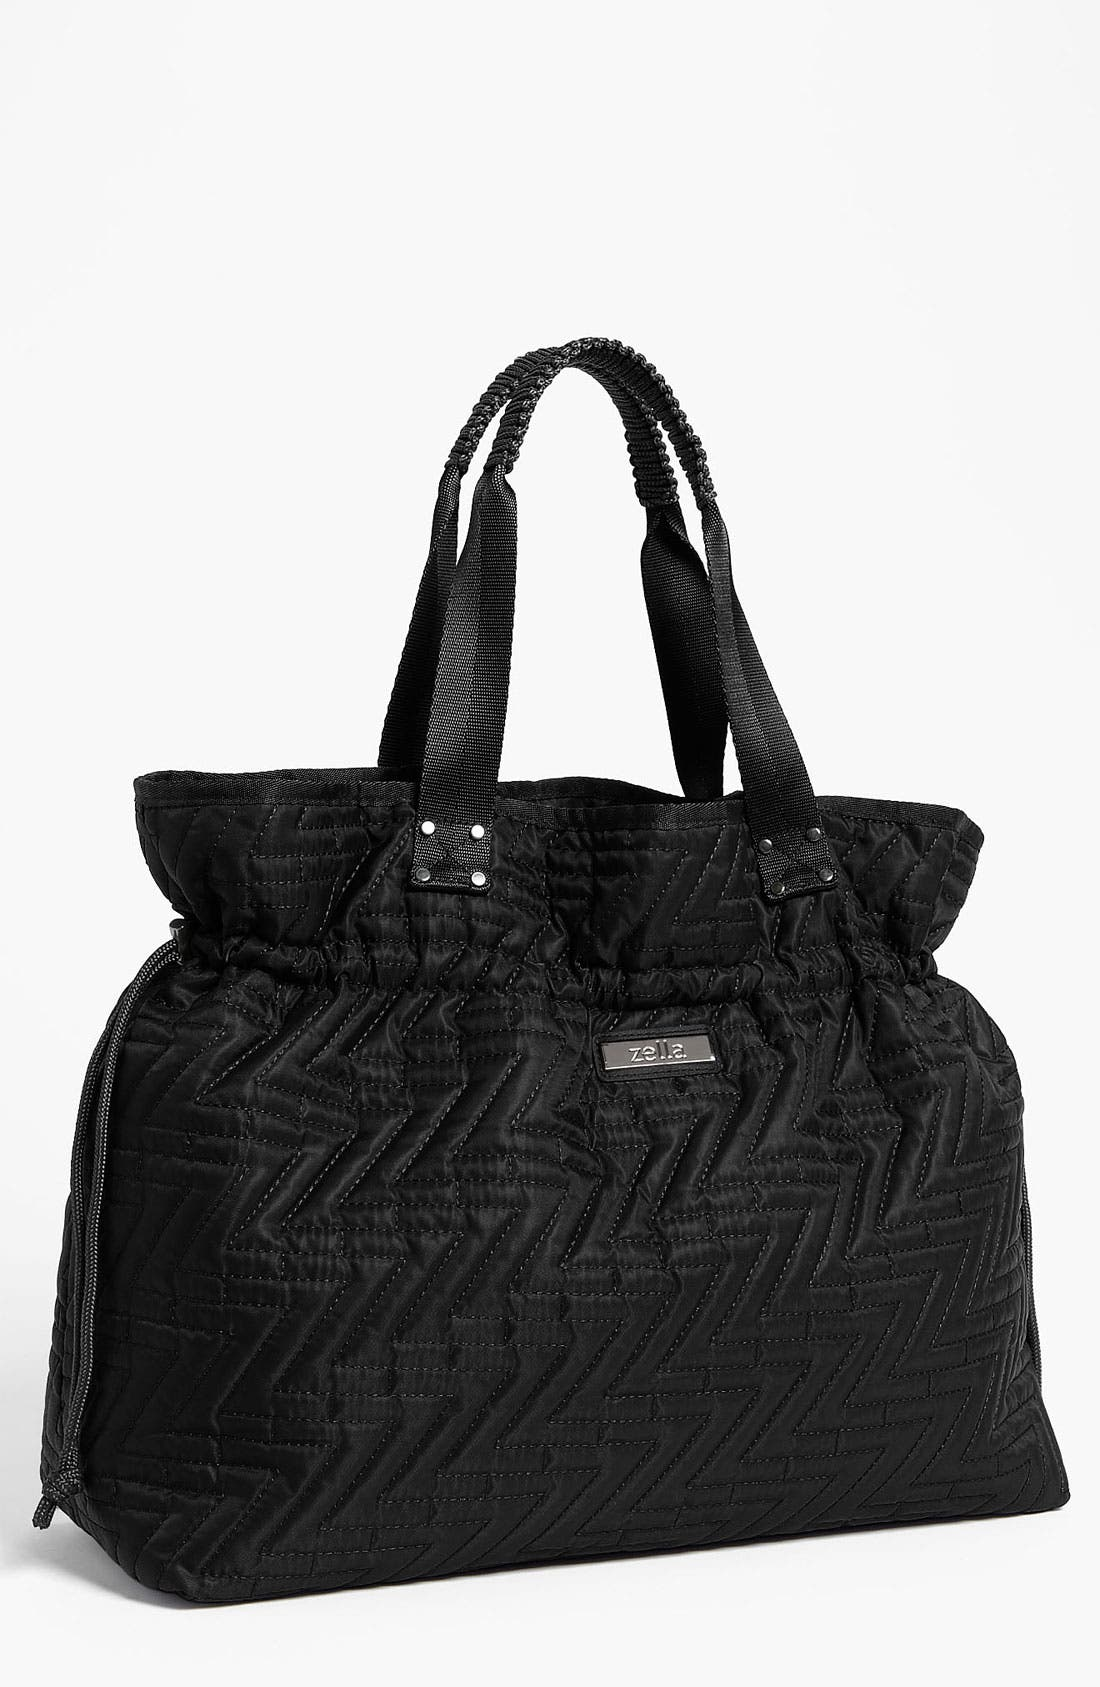 Alternate Image 1 Selected - Zella Drawstring Reversible Tote